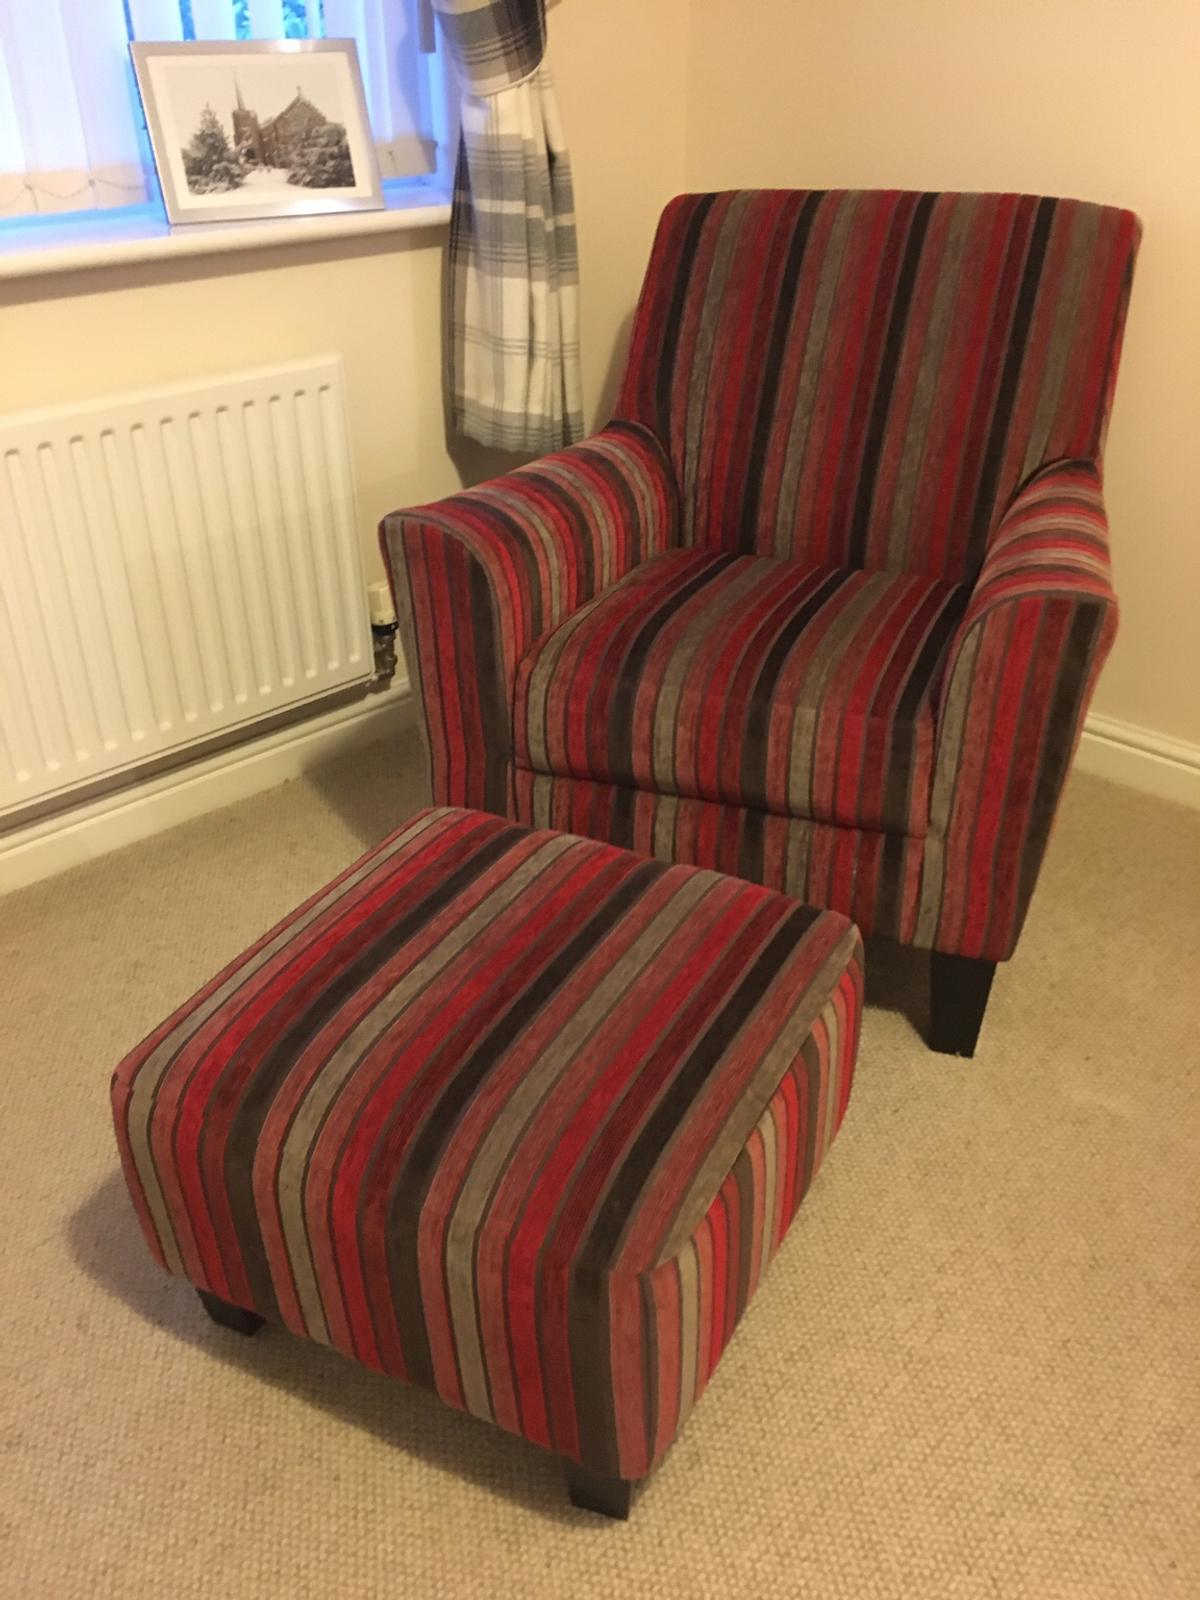 Sensational Next Accent Chair And Footstool In Ll29 Colwyn For 155 00 Ocoug Best Dining Table And Chair Ideas Images Ocougorg